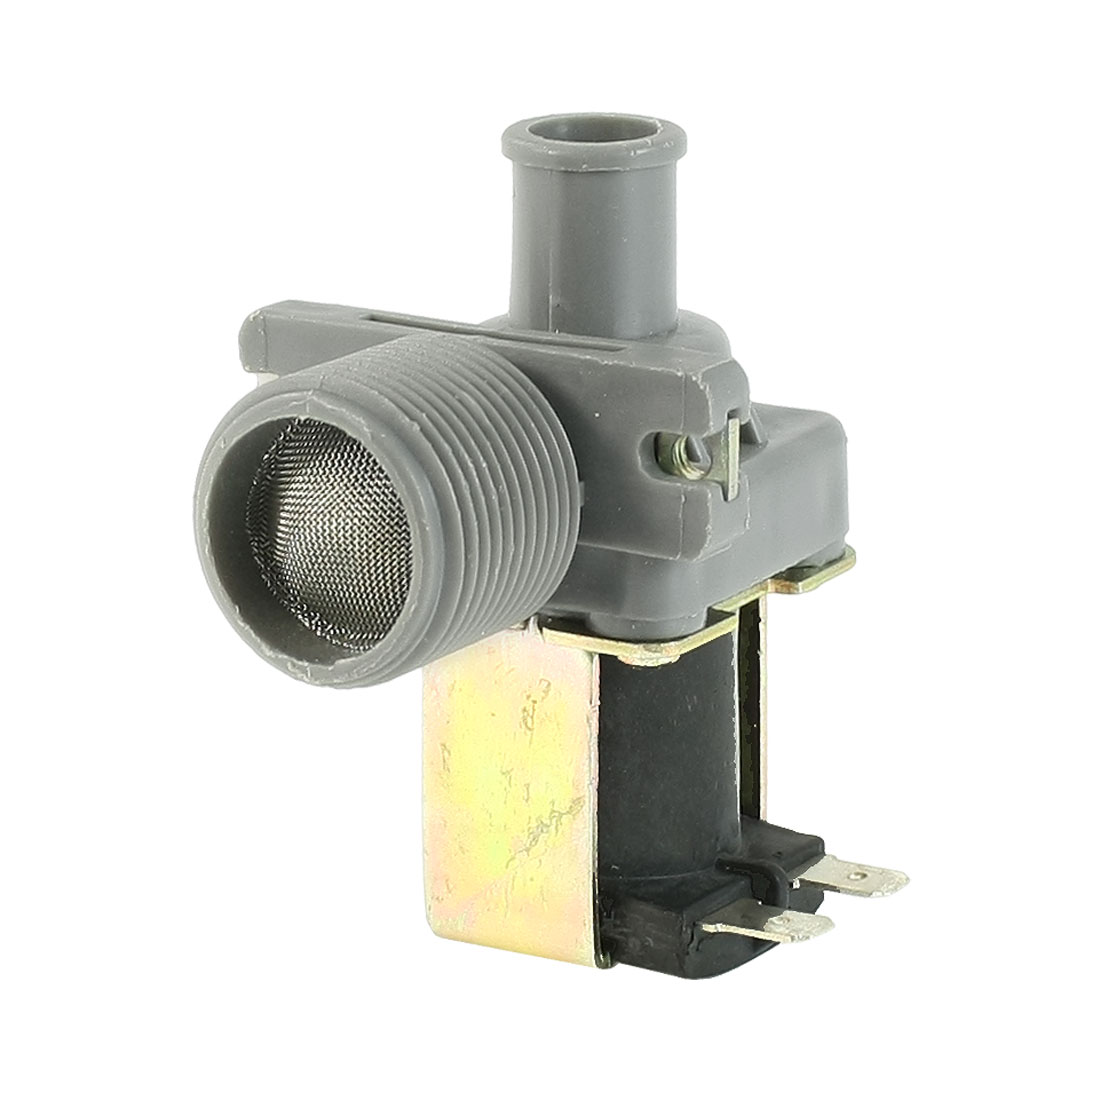 26mm Thread Water Solenoid Valve AC 220V 50Hz for Automatic Washing Machine